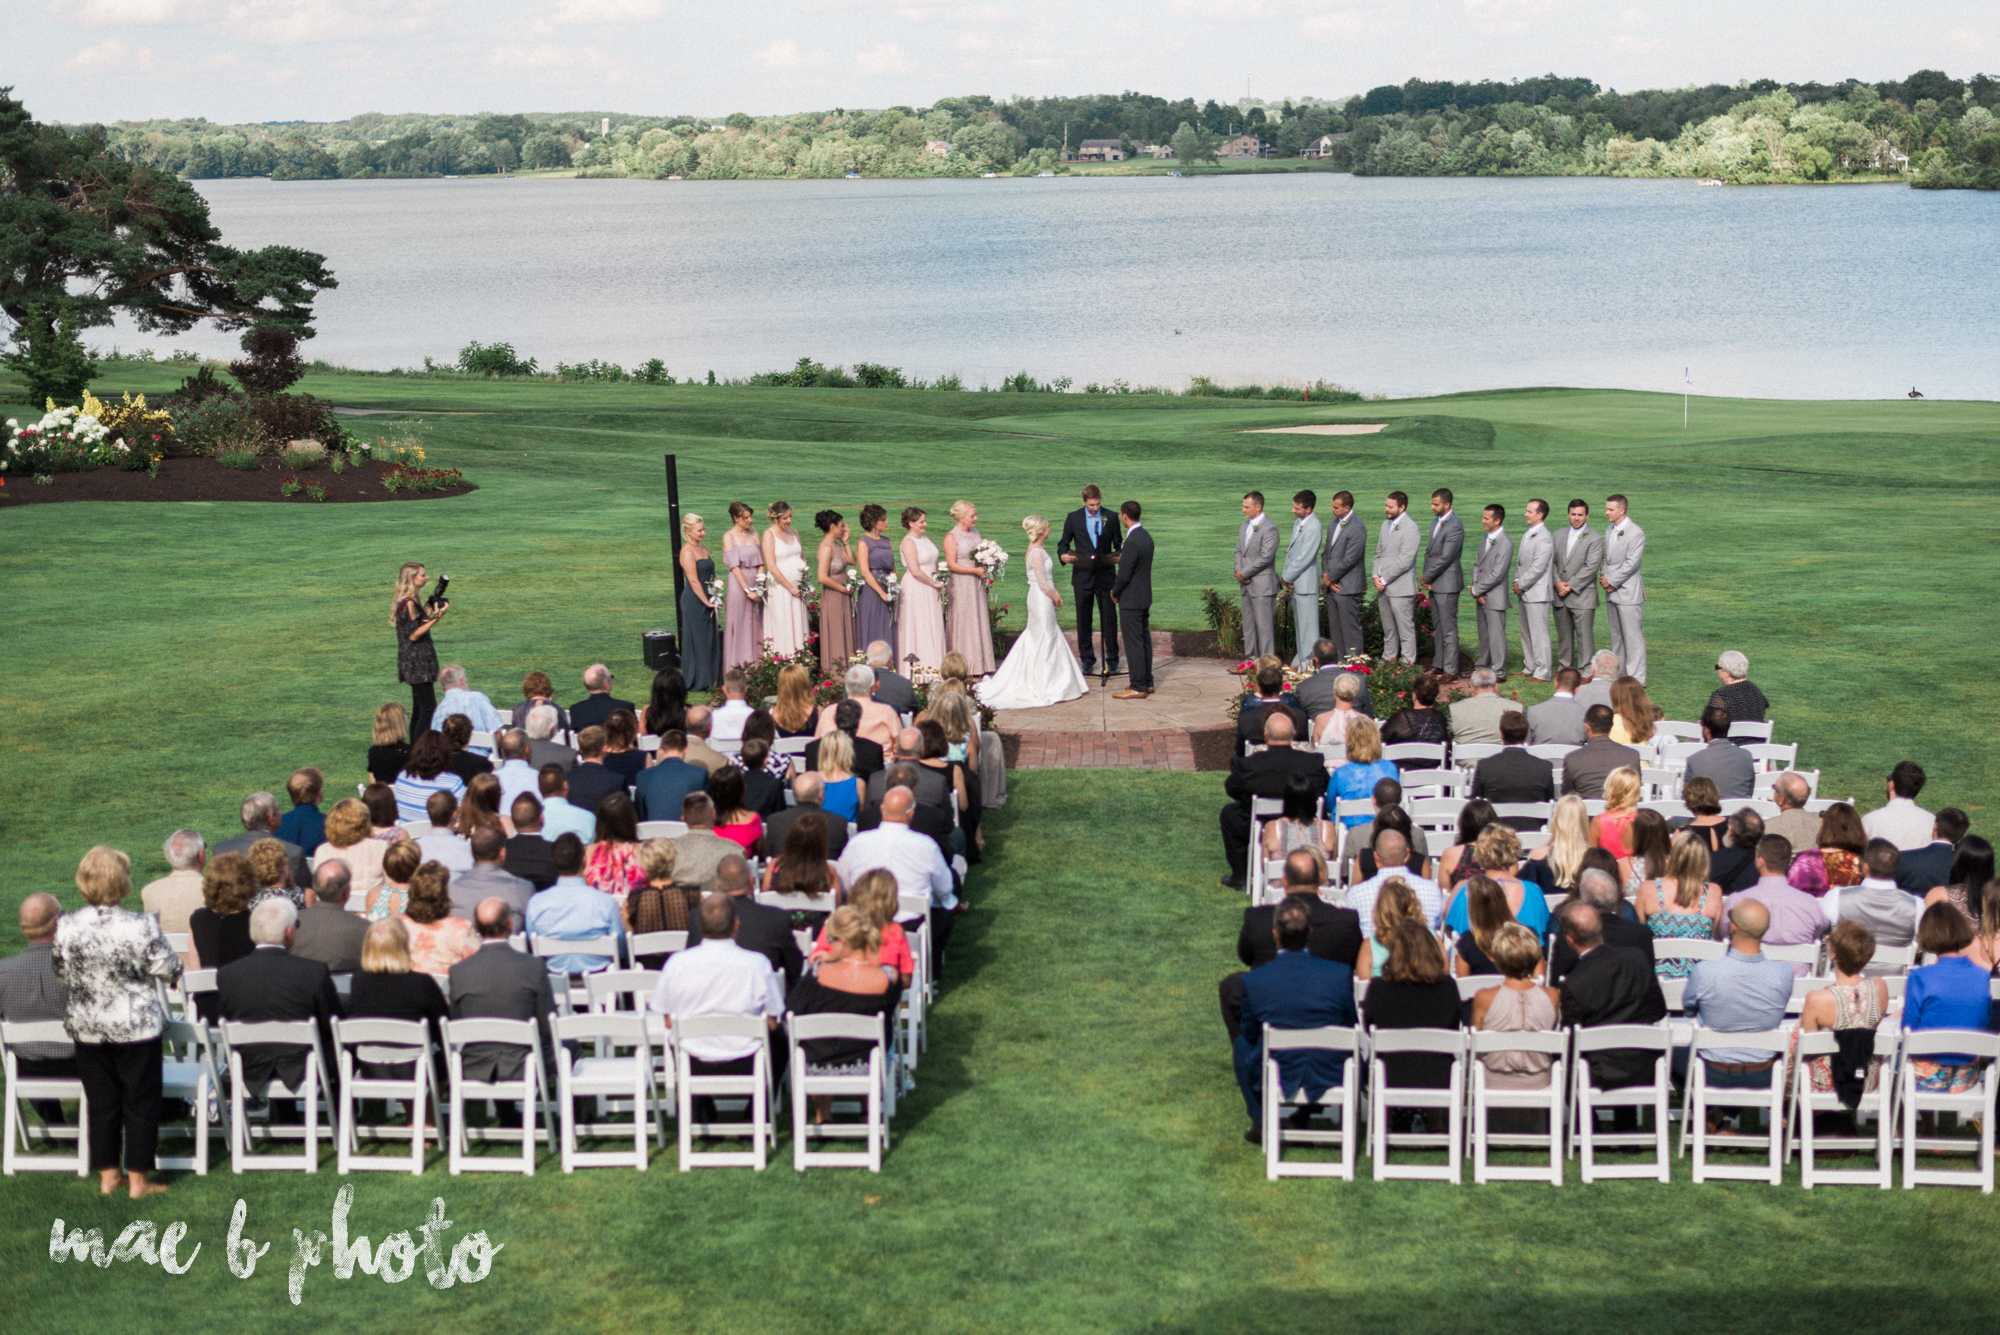 emily and michael's industrial chic summer country club wedding at the lake club in poland ohio photographed by cleveland wedding photographer mae b photo-97.jpg